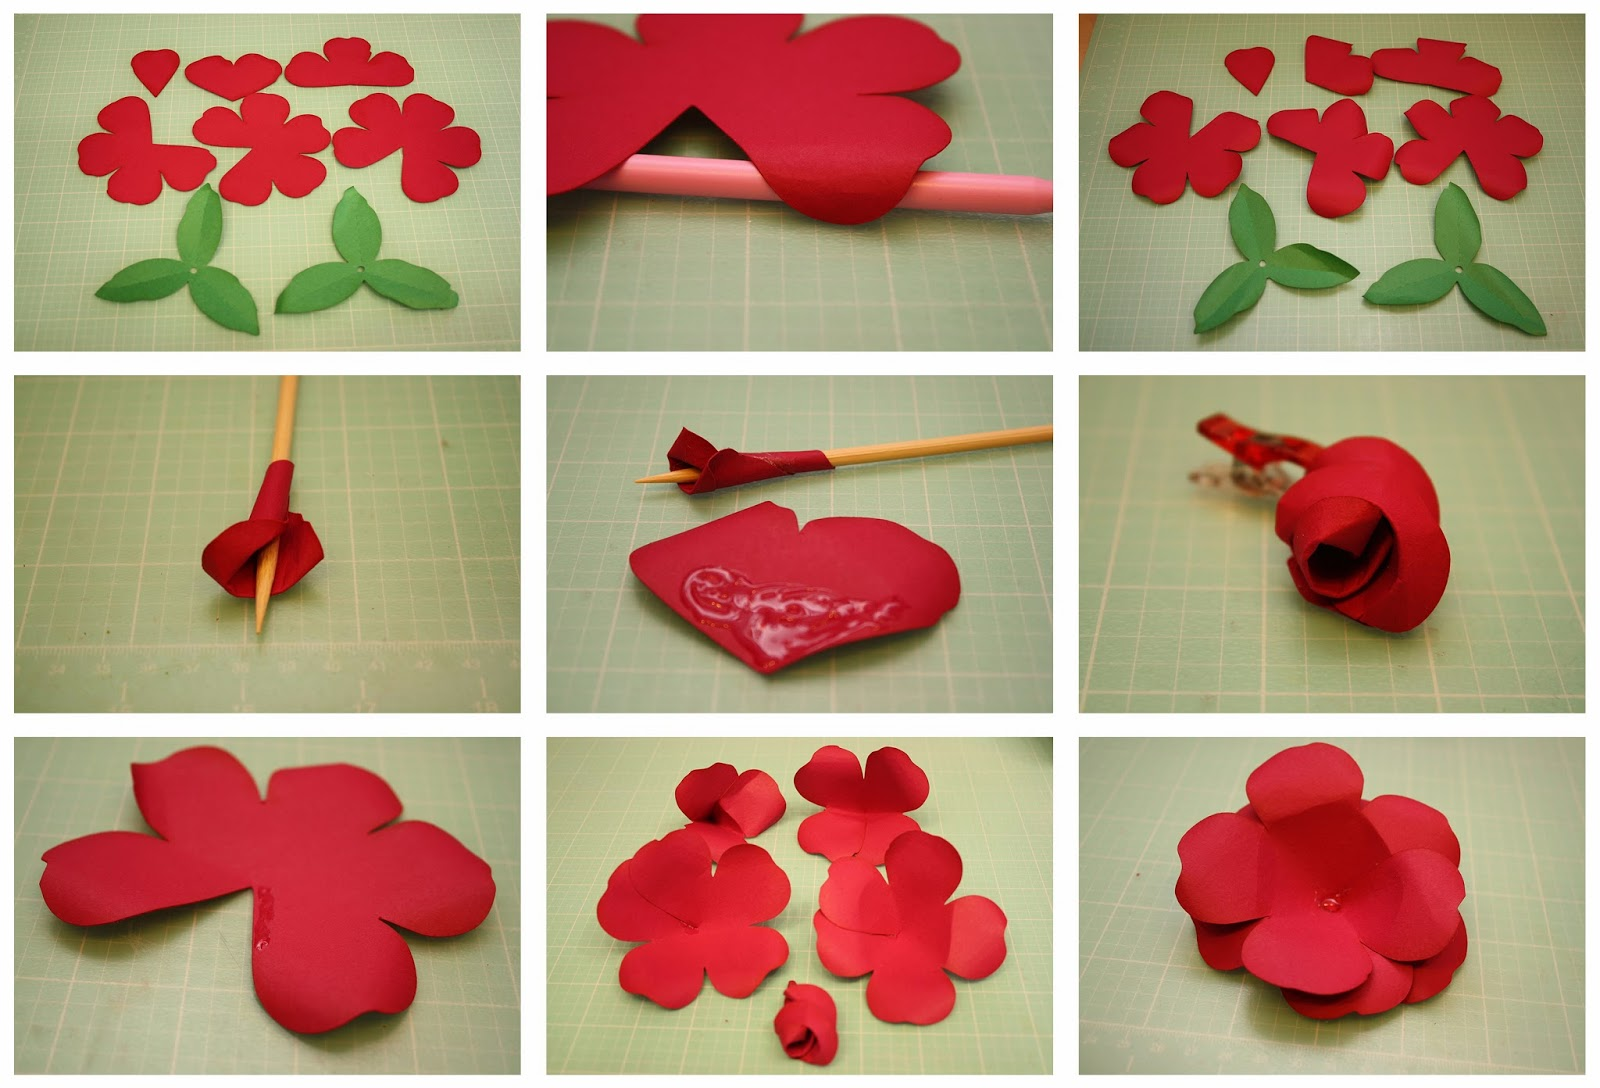 How to make a easy rose flower with paper acurnamedia bits of paper rolled rose and easy to assemble rose 3d paper flowers how to make mightylinksfo